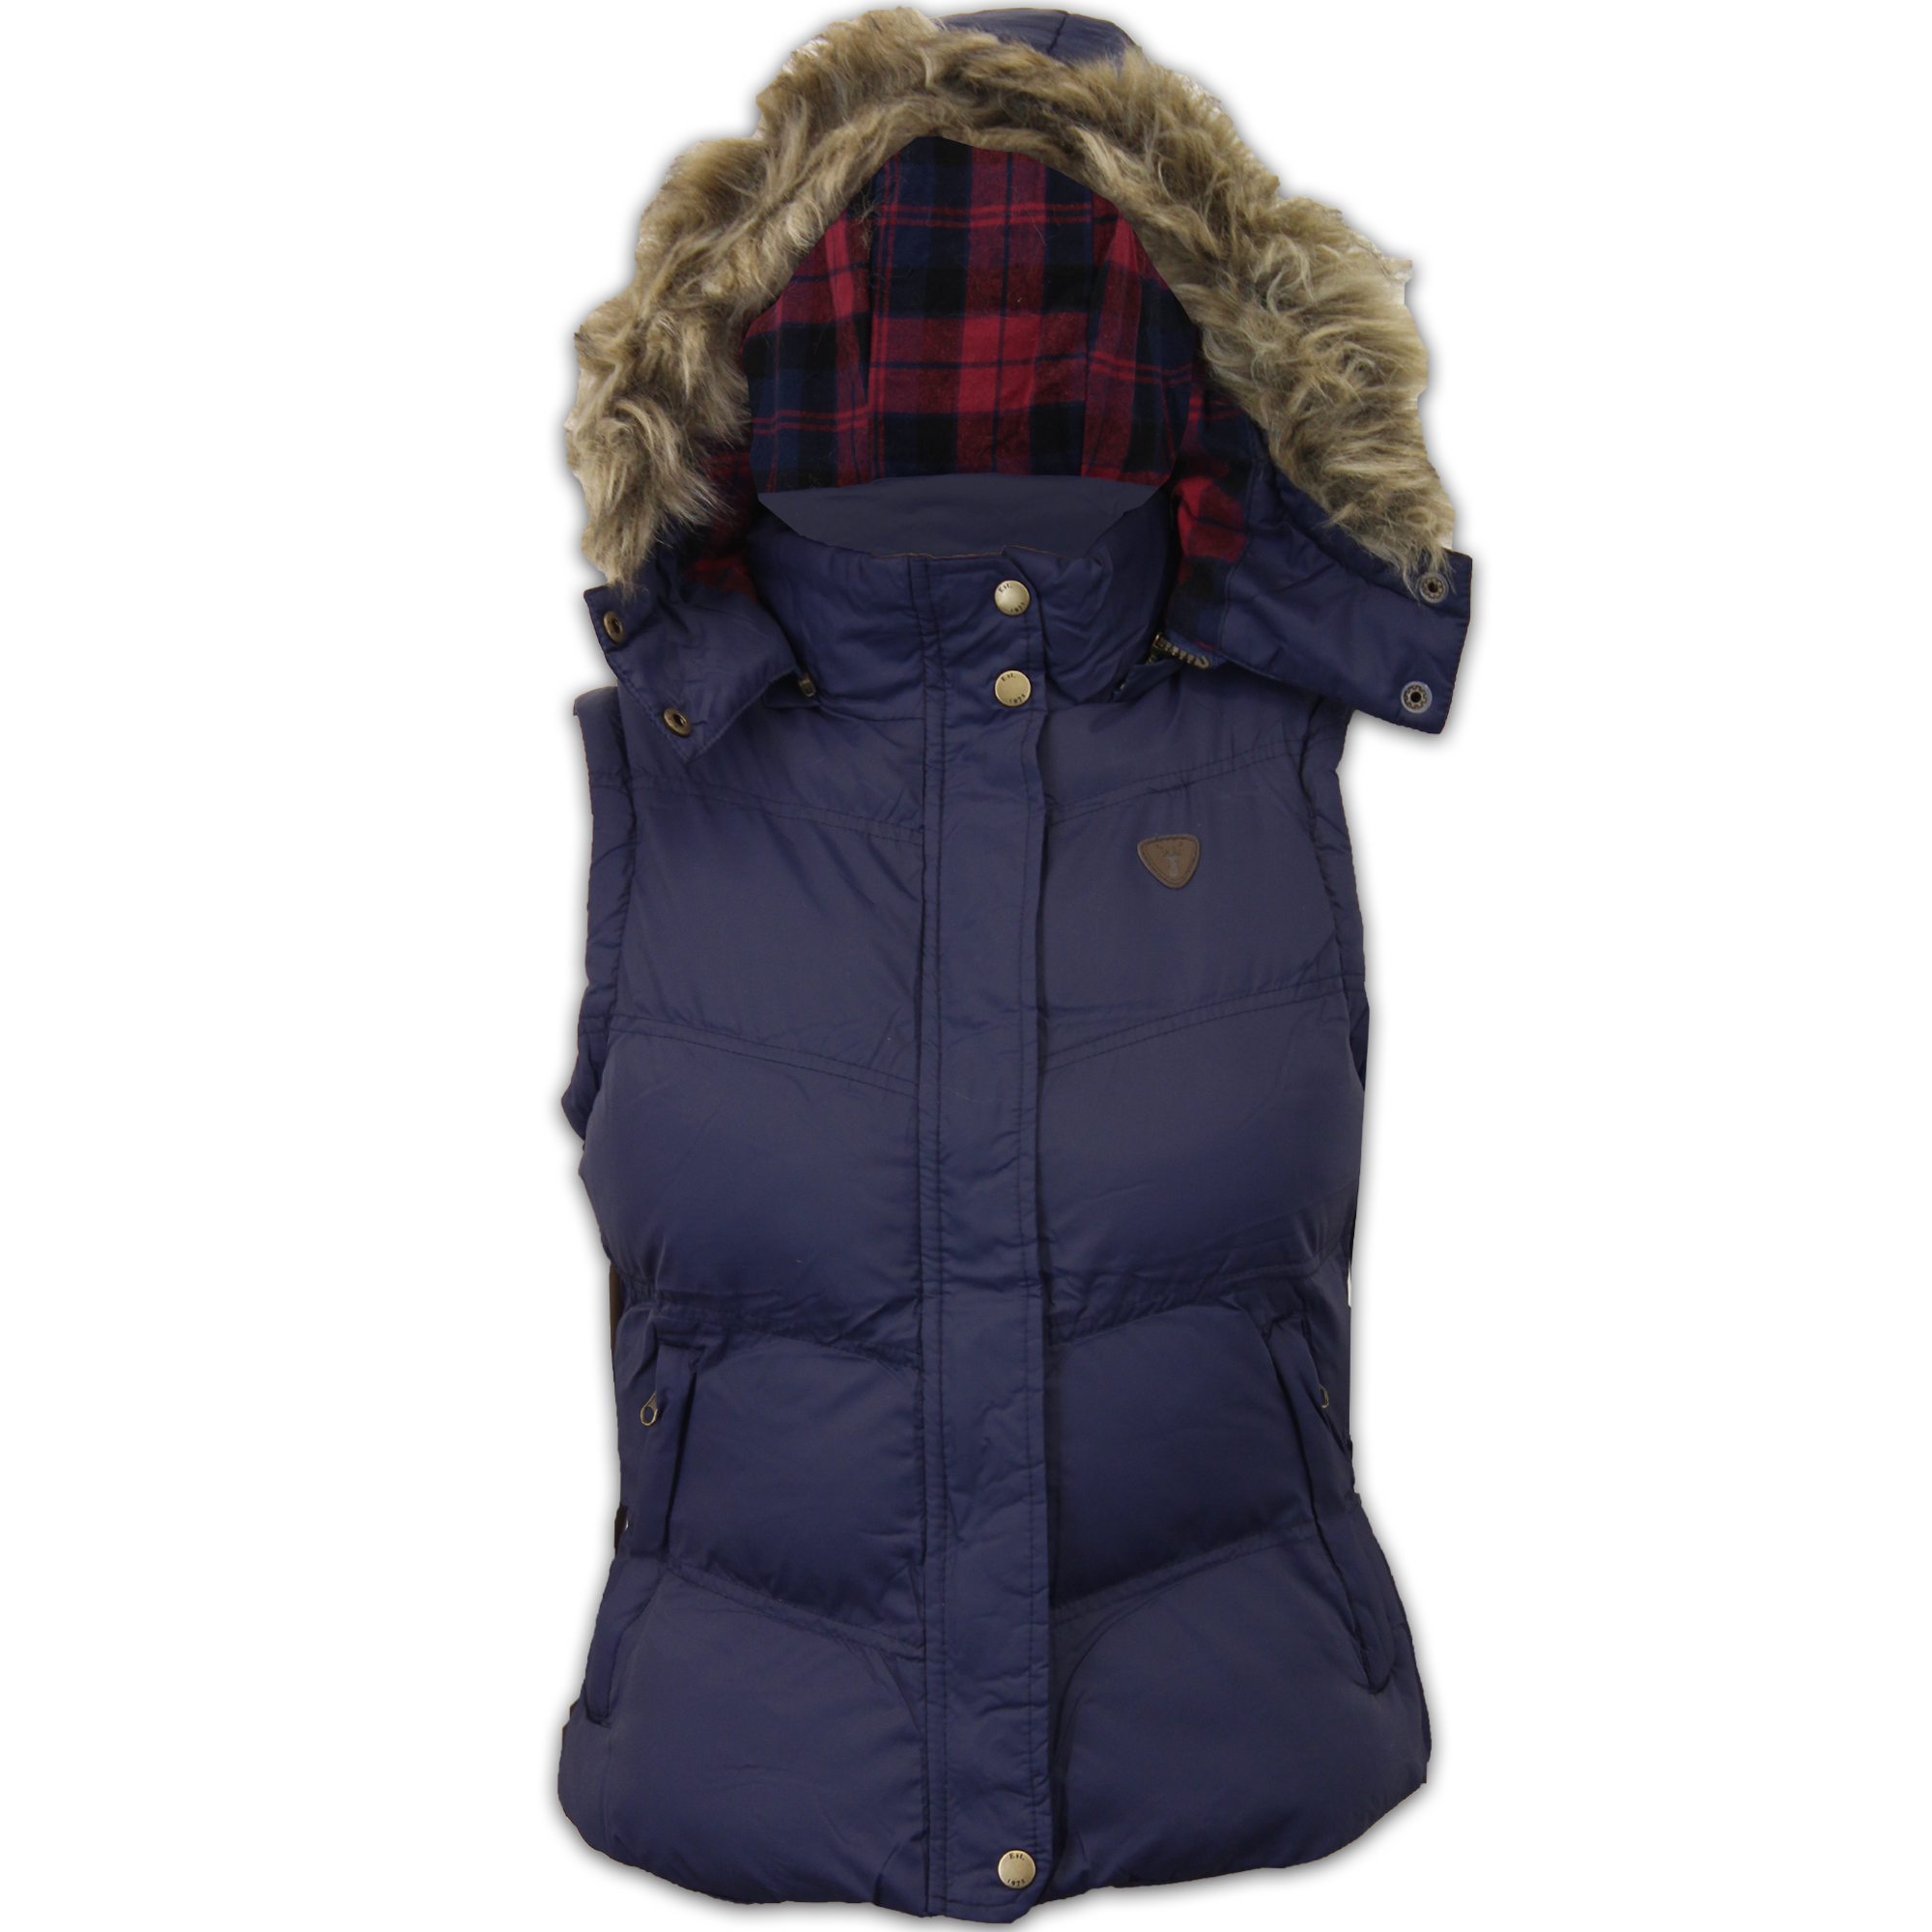 Find great deals on eBay for hooded gilet. Shop with confidence.